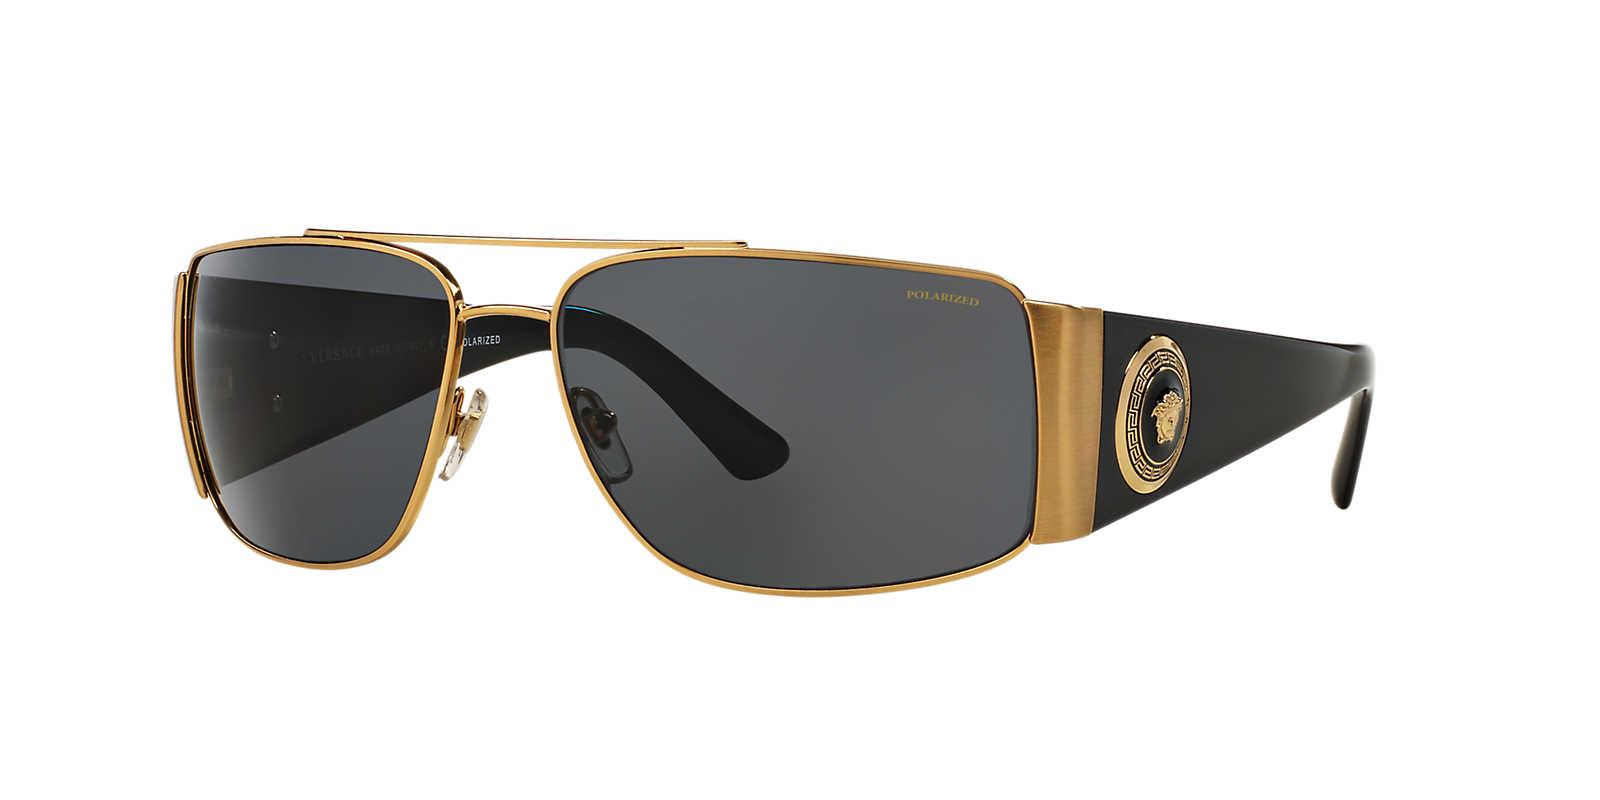 34049f78390f Versace. Men s Metallic Sunglasses ...